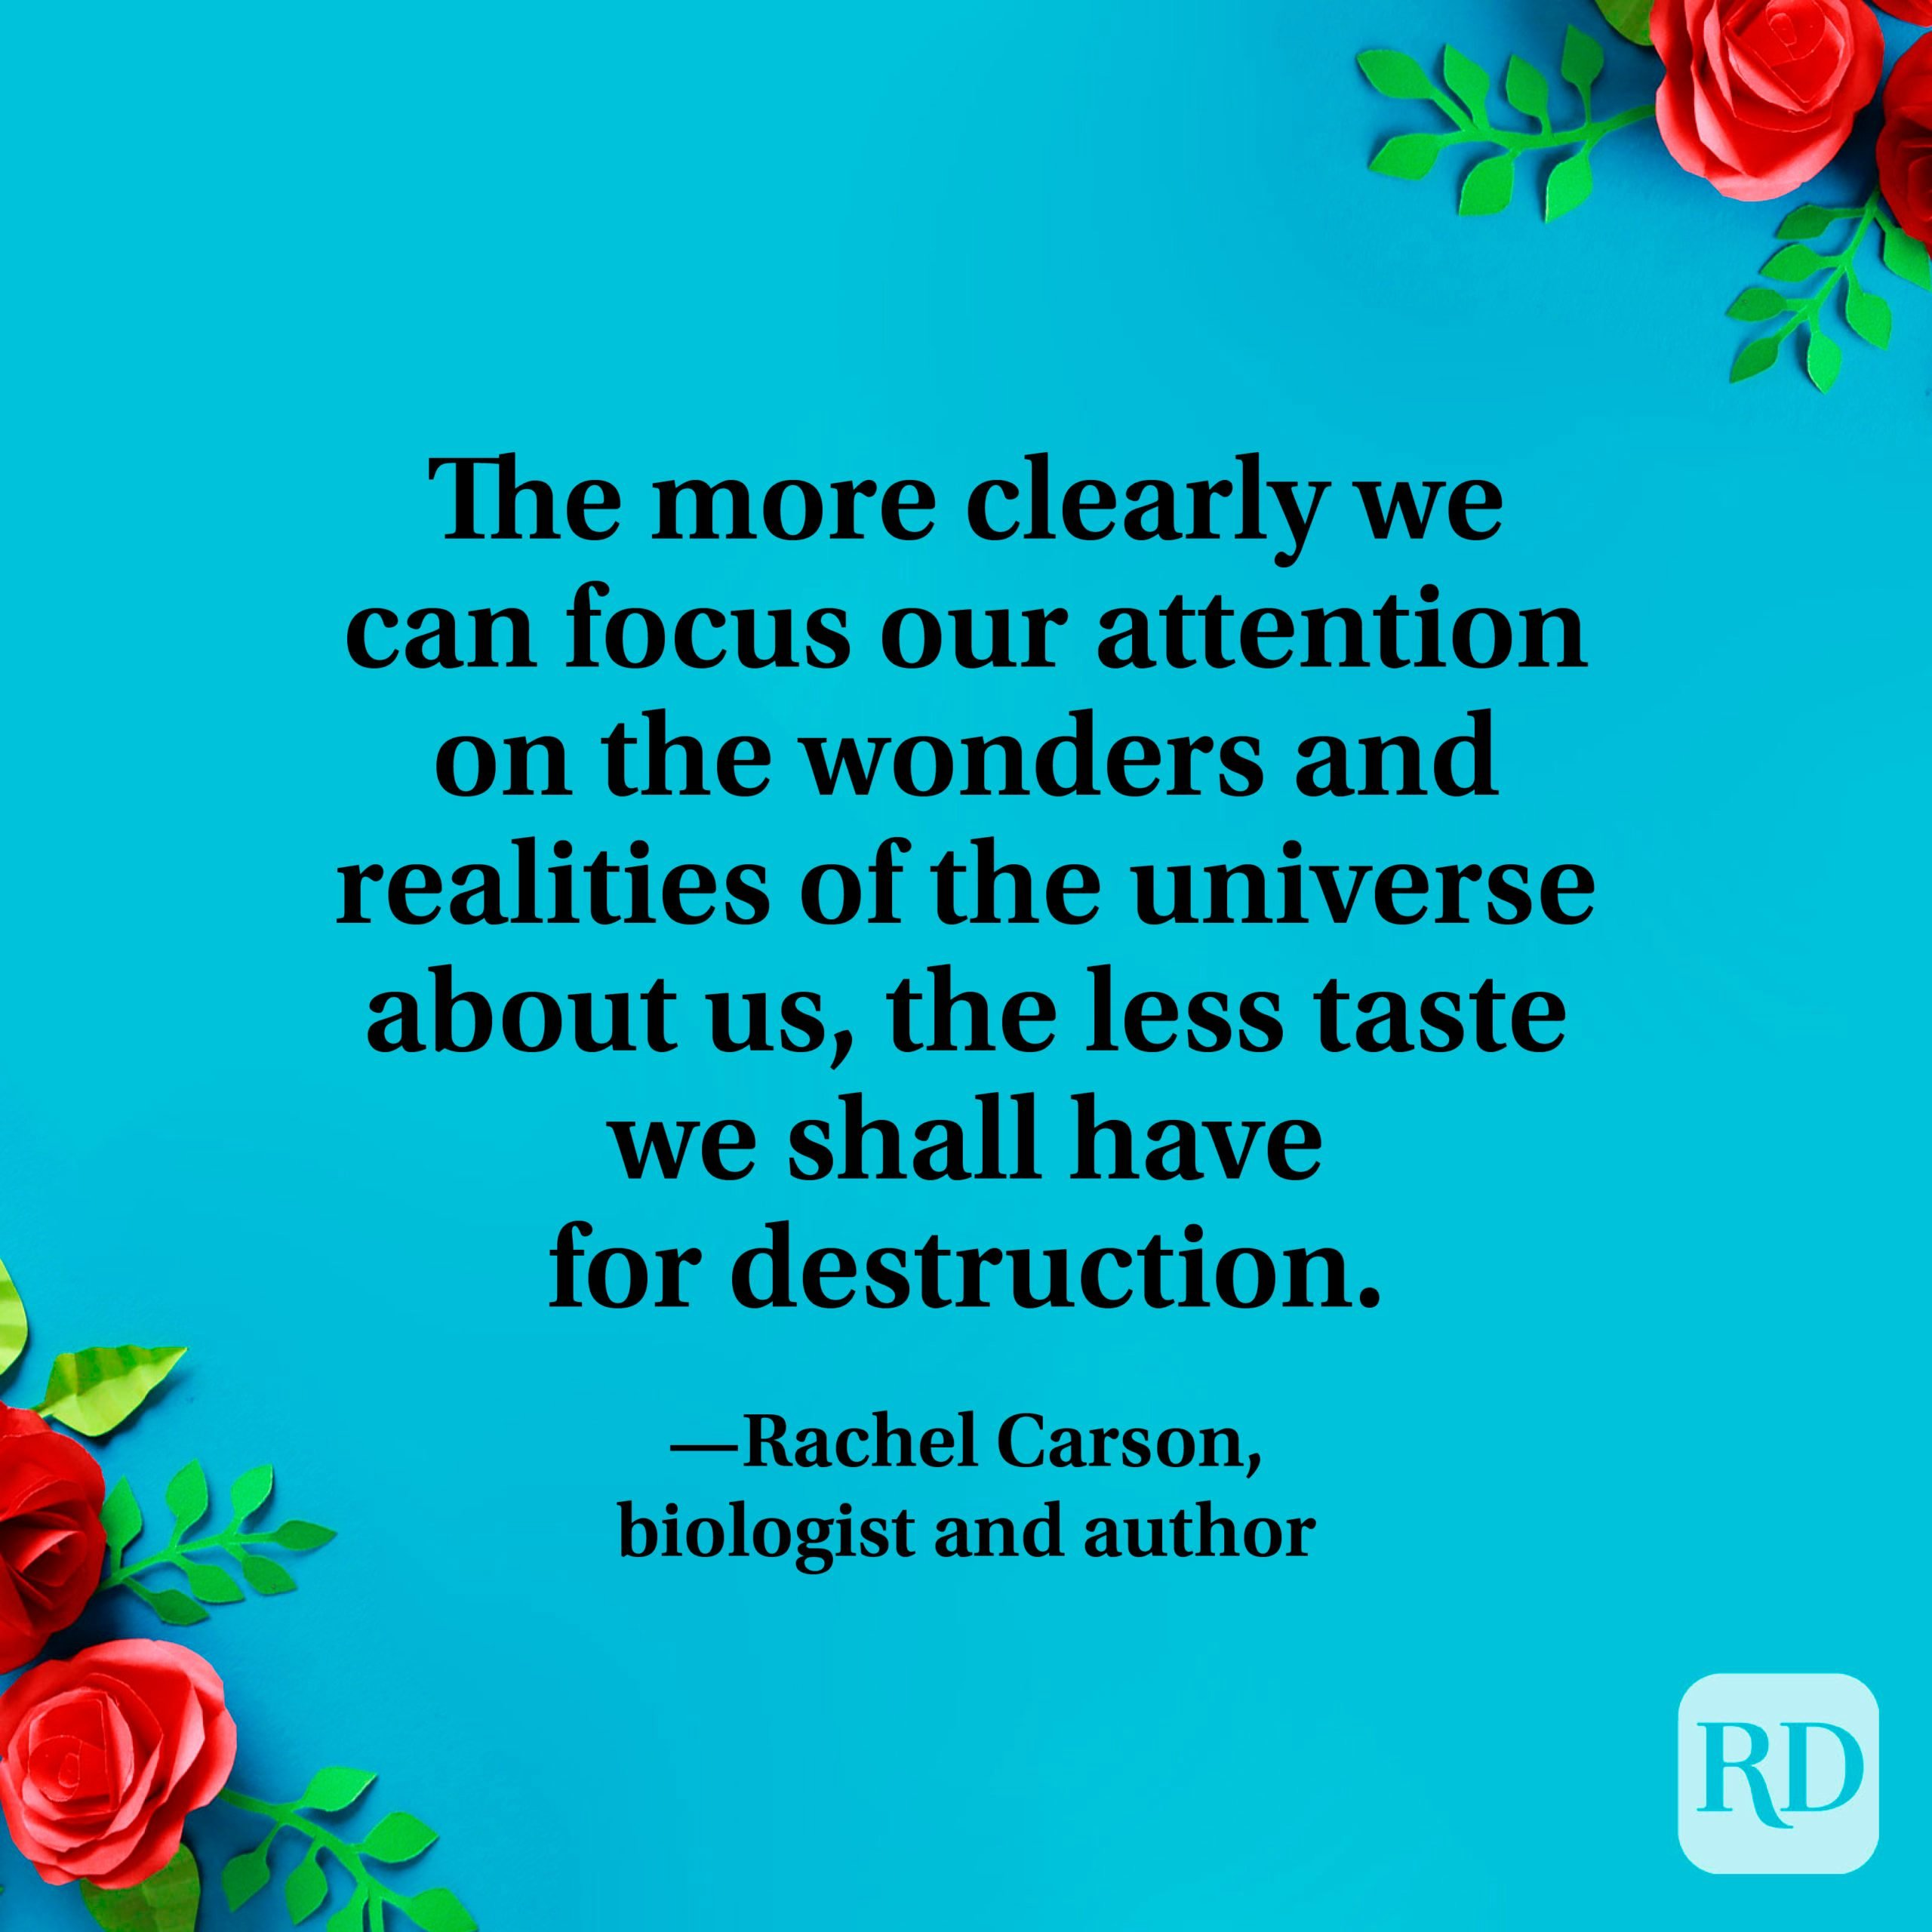 """""""The more clearly we can focus our attention on the wonders and realities of the universe about us, the less taste we shall have for destruction."""" —Rachel Carson, biologist and author"""